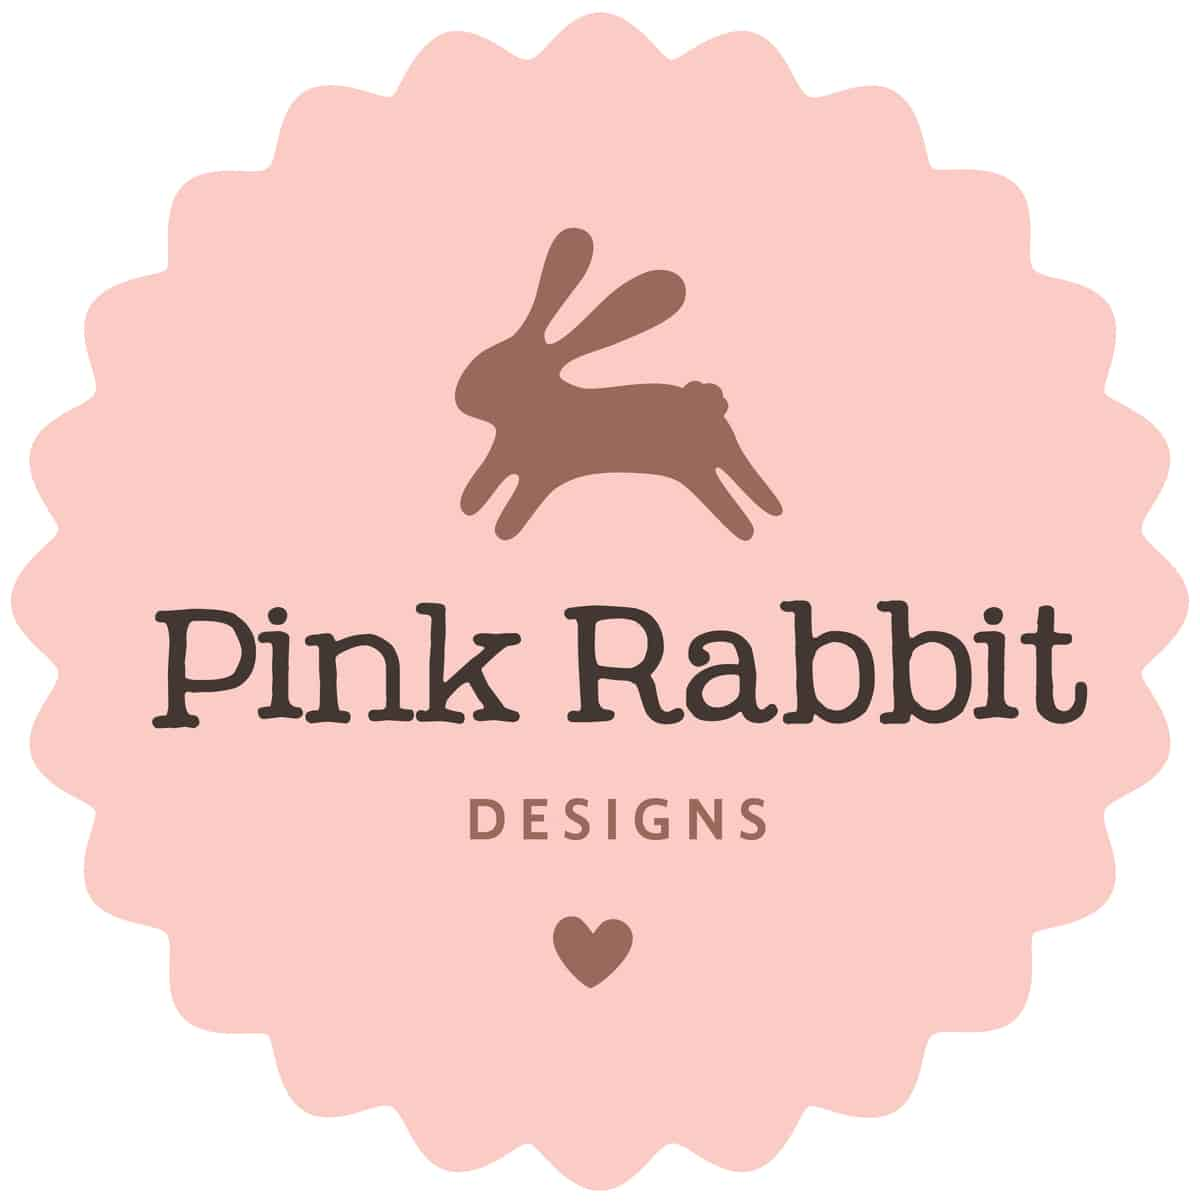 Pink Rabbit Designs